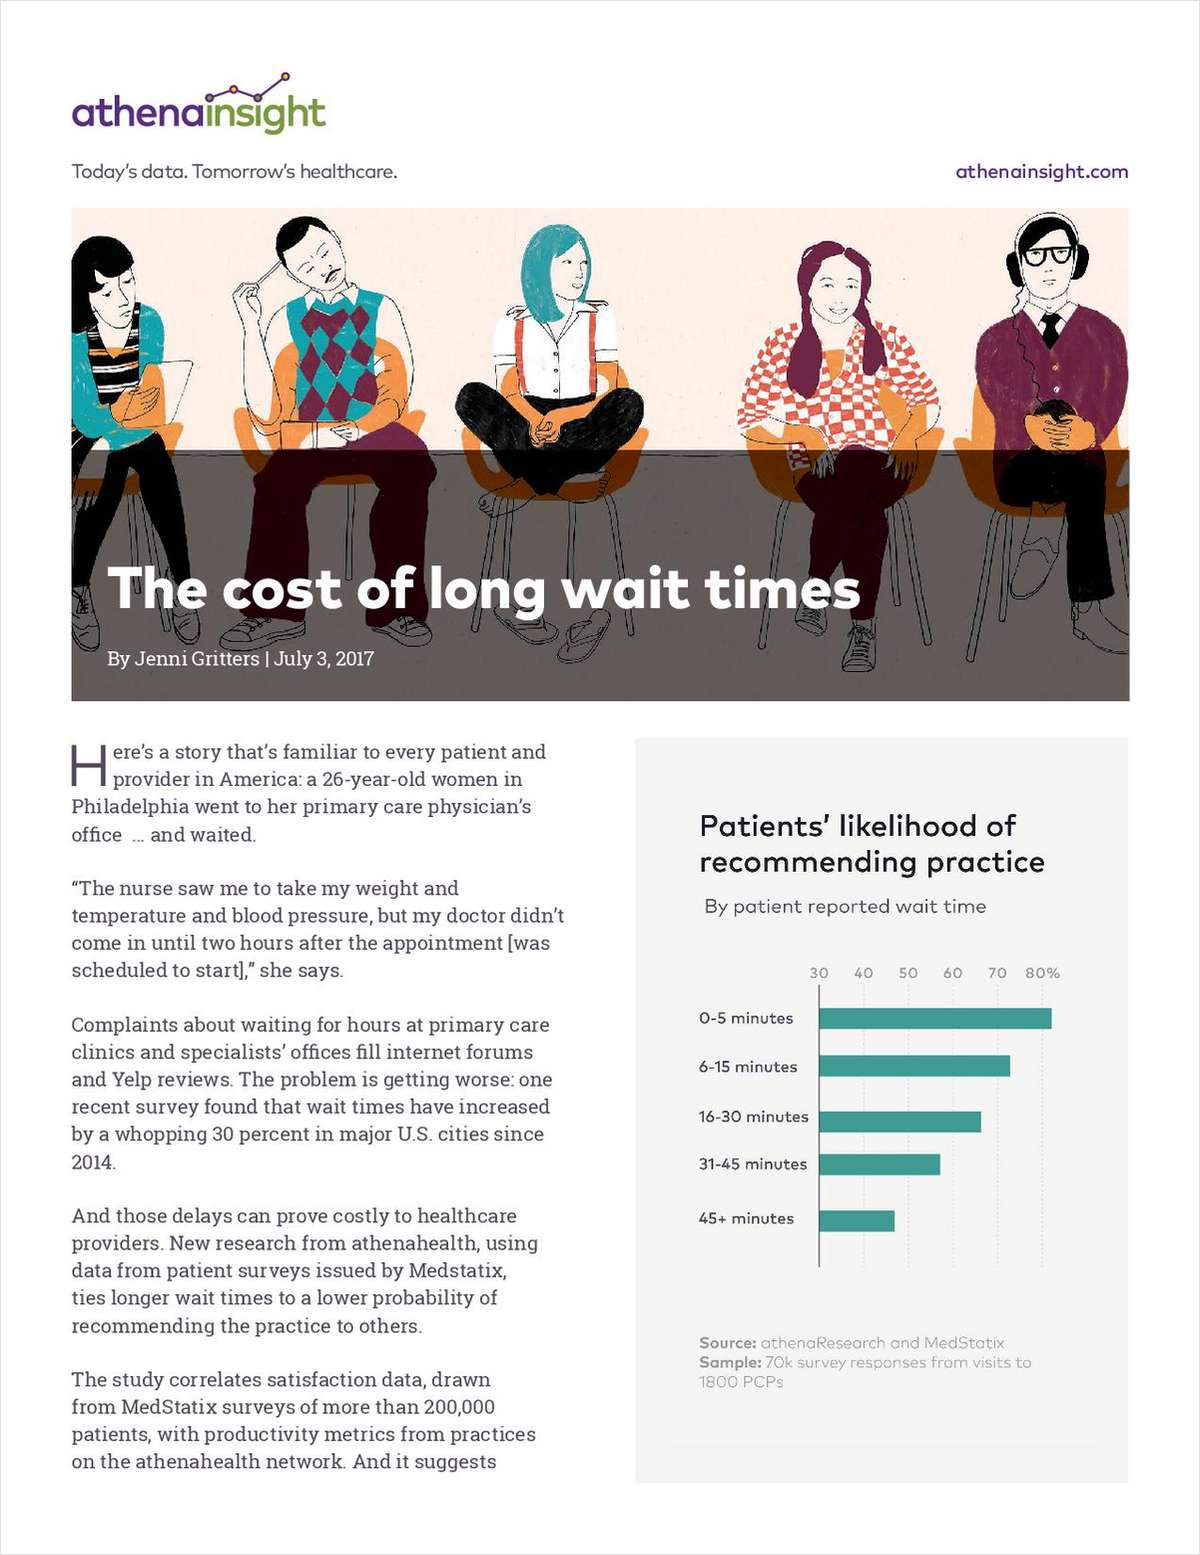 The Cost of Long Wait Times